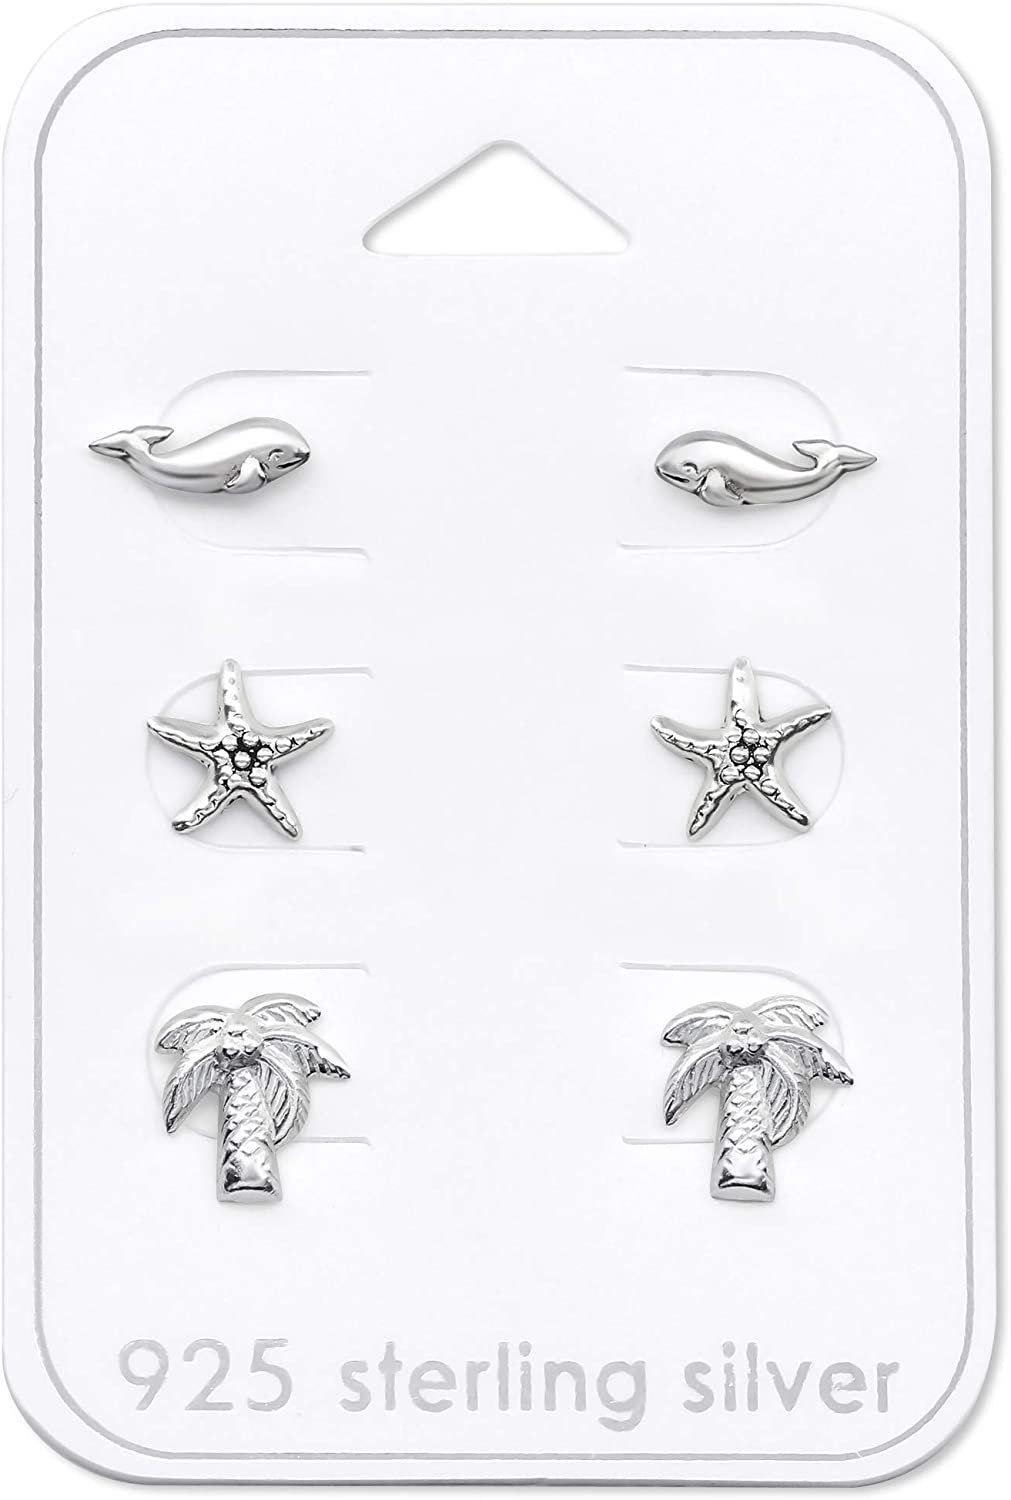 The Rose /& Silver Company Women 925 Sterling Silver Whale Starfish Palm Tree Stud Earrings Set RS1046